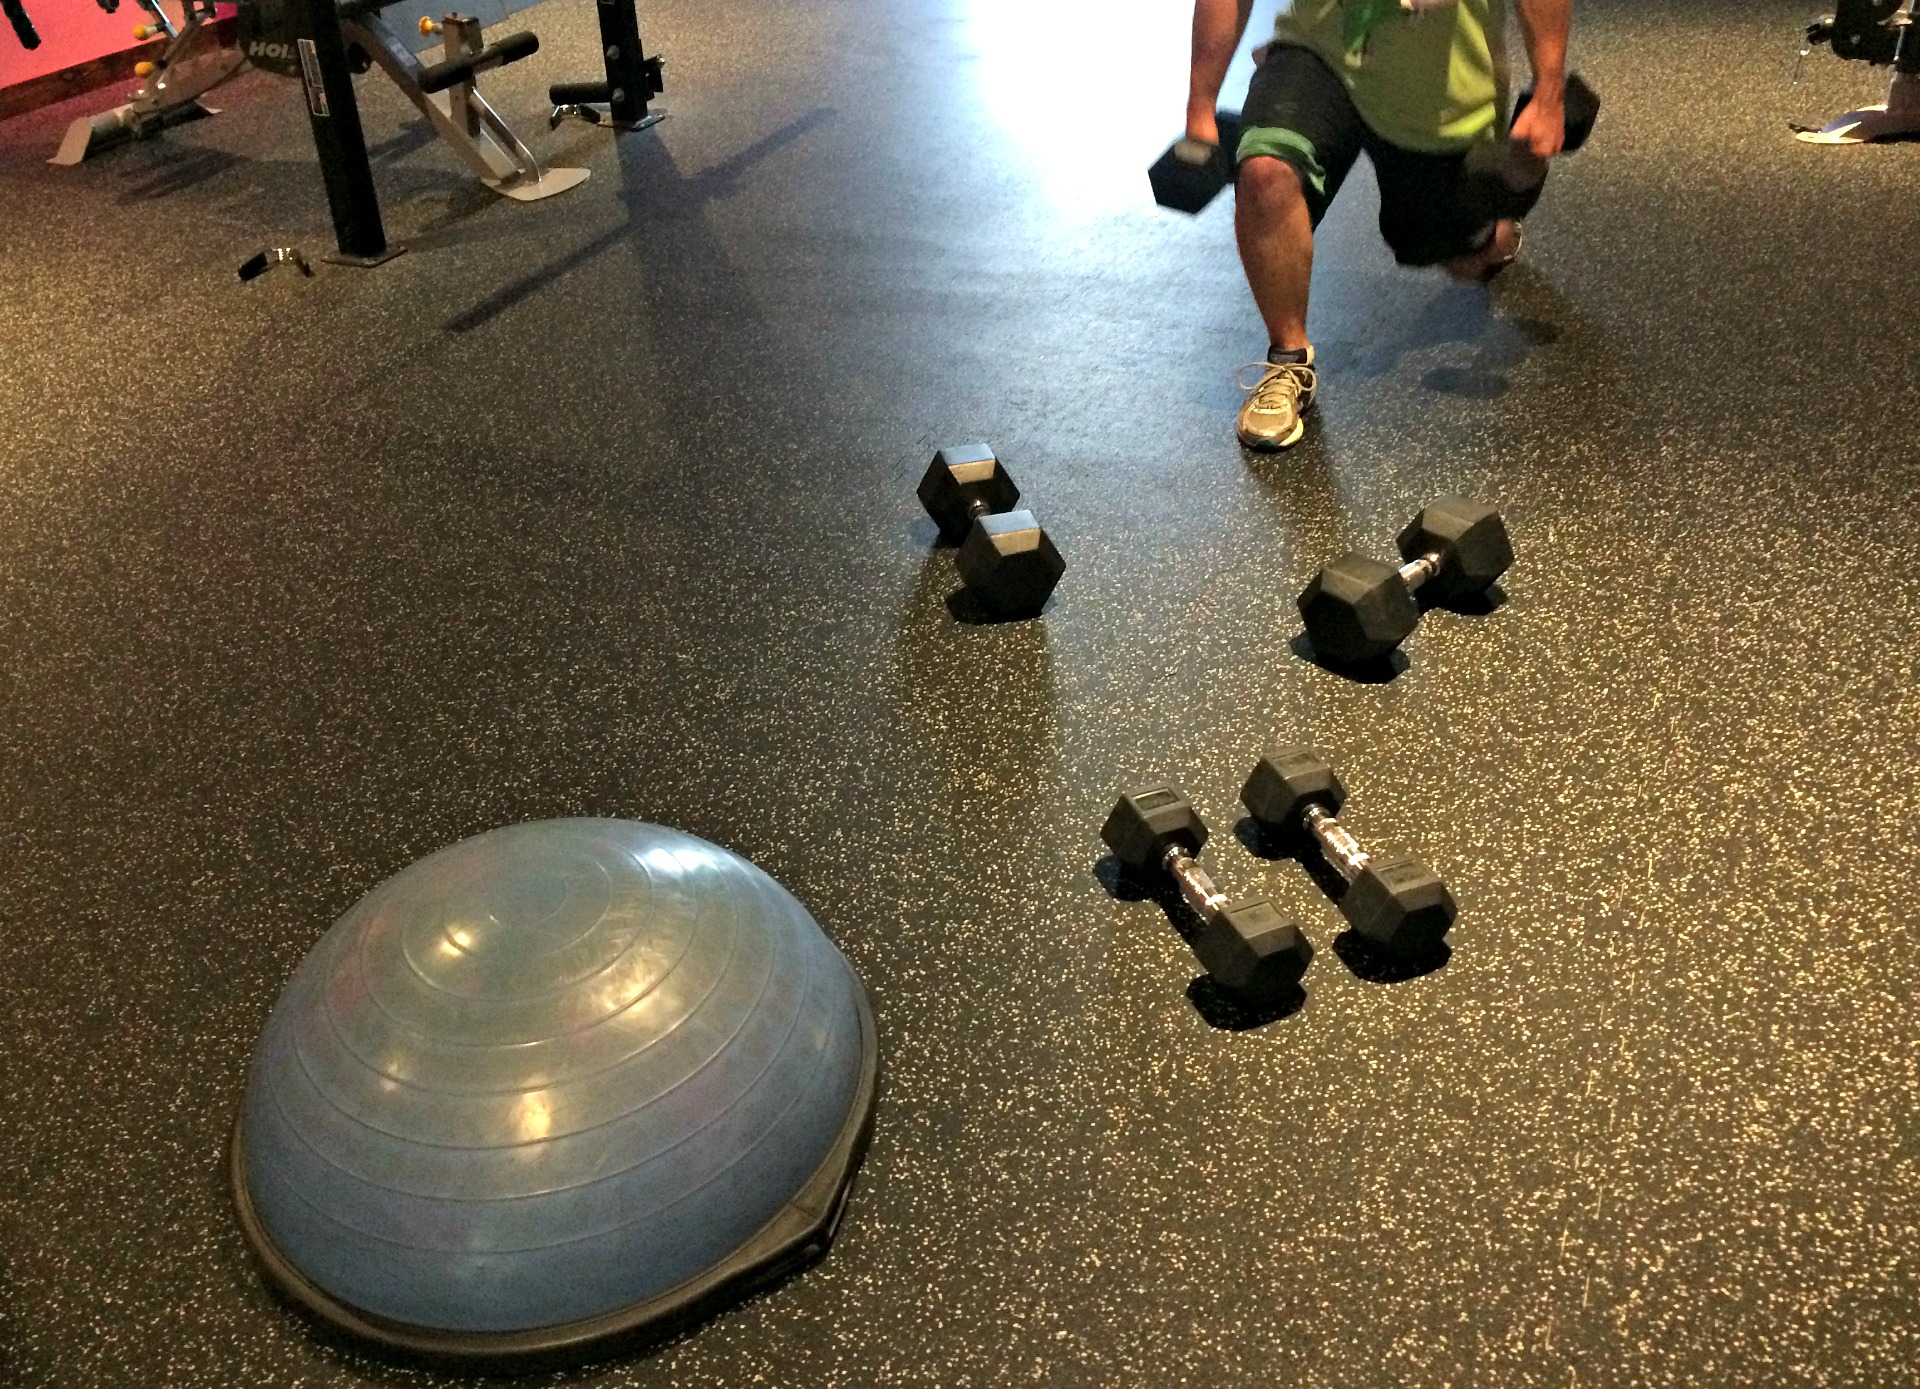 dumbbell strength workout at the gym